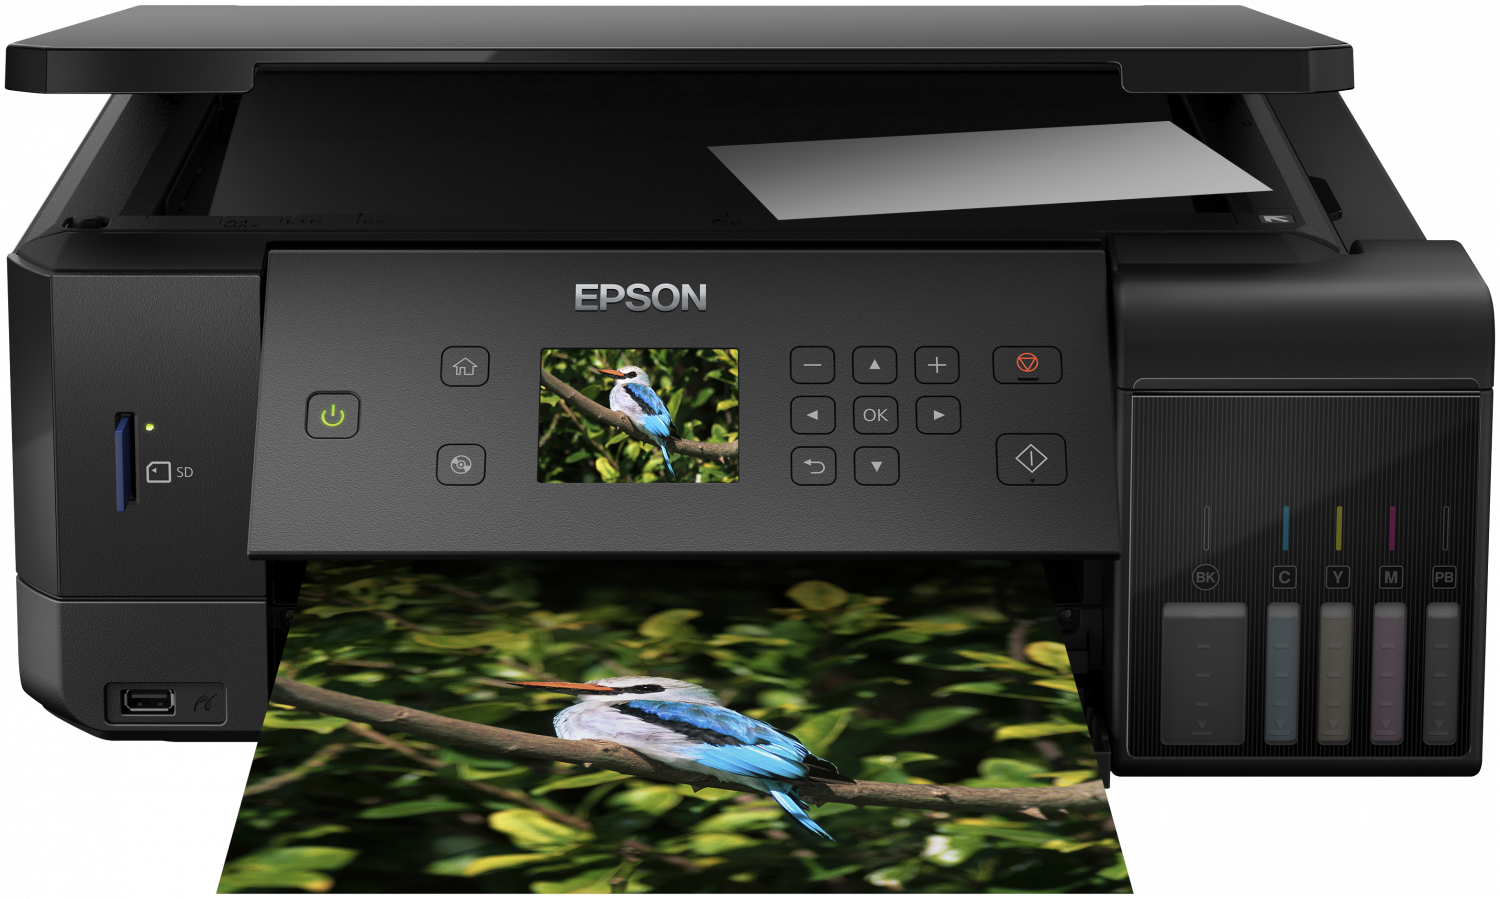 Multifunctional Inkjet Color Epson EcoTank L7160